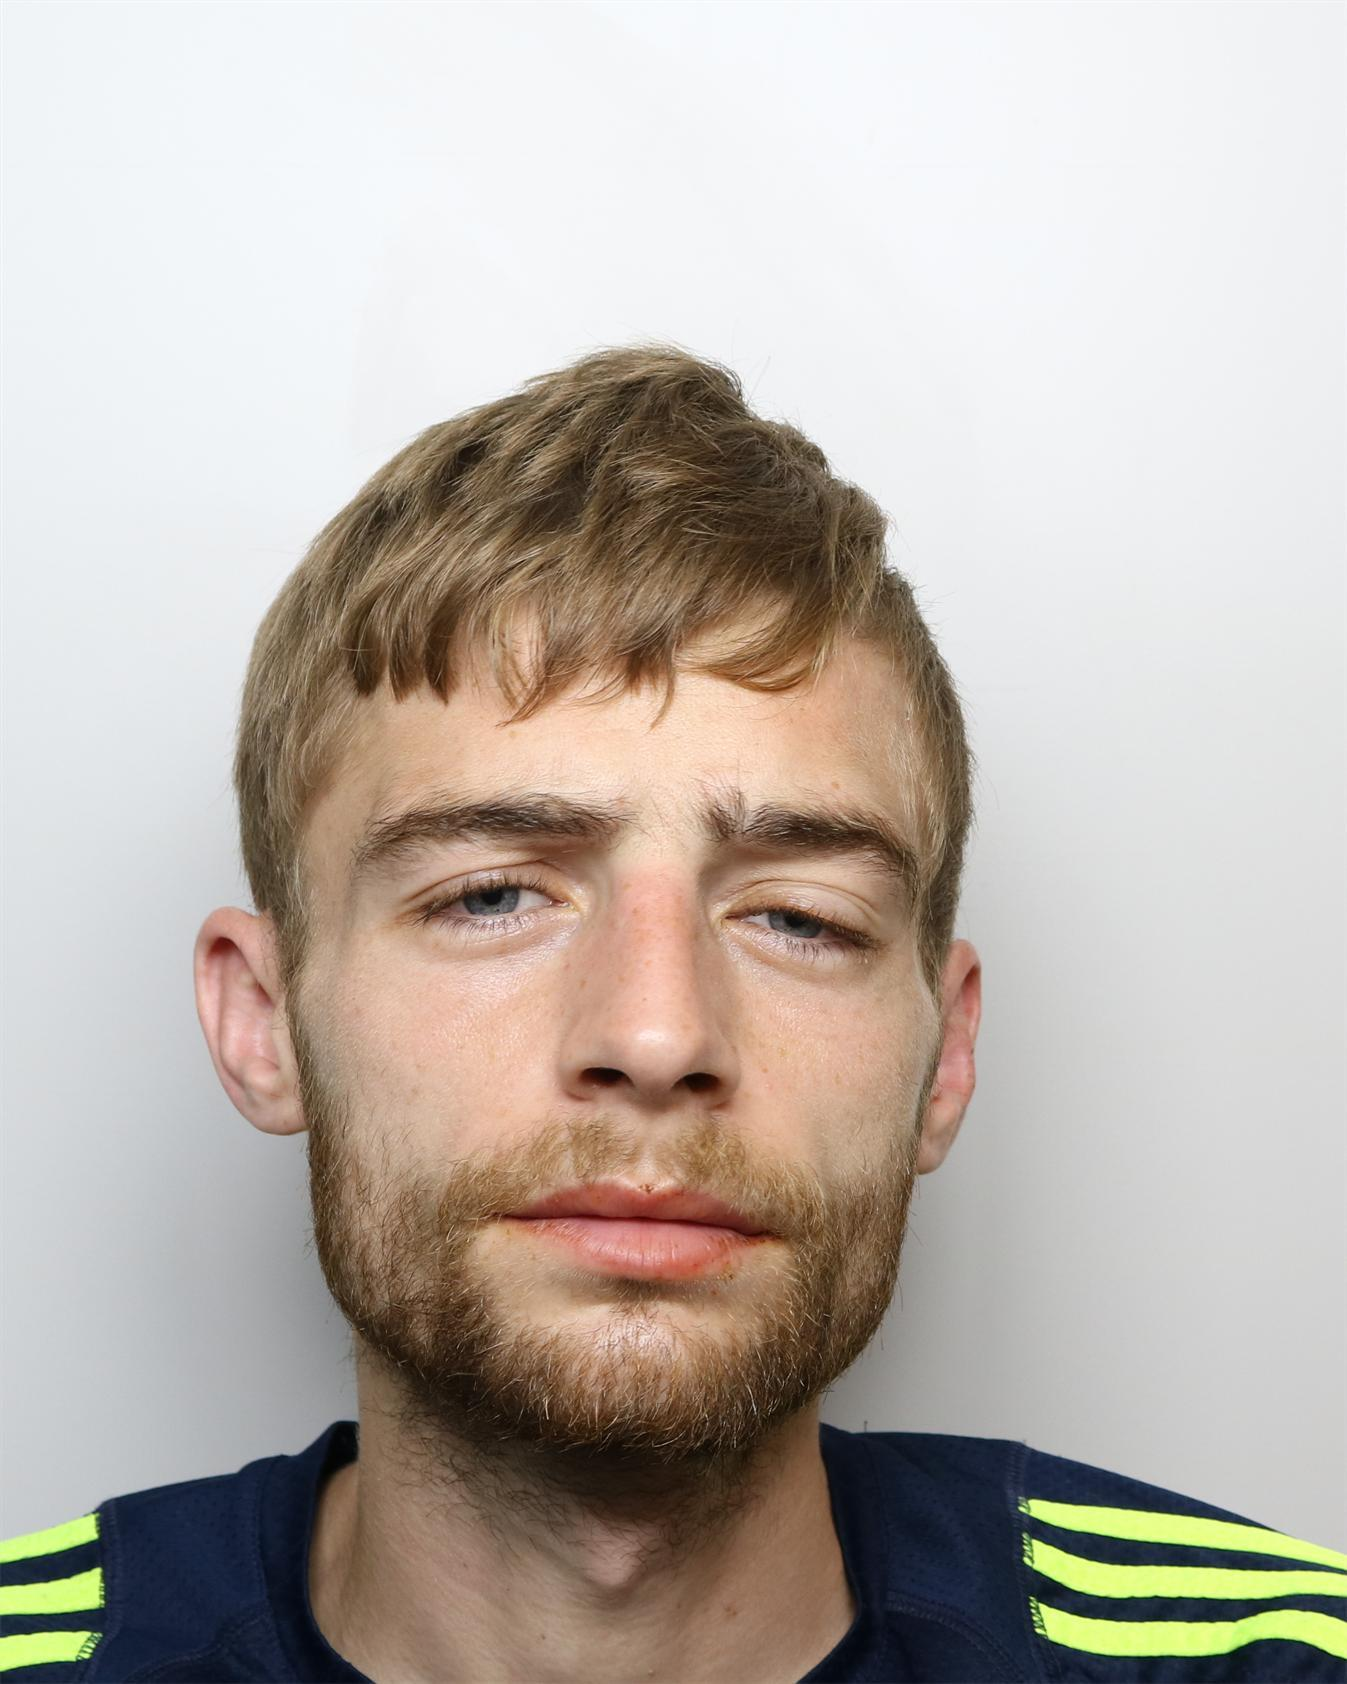 Shane Frayne. Picture: West Yorkshire Police